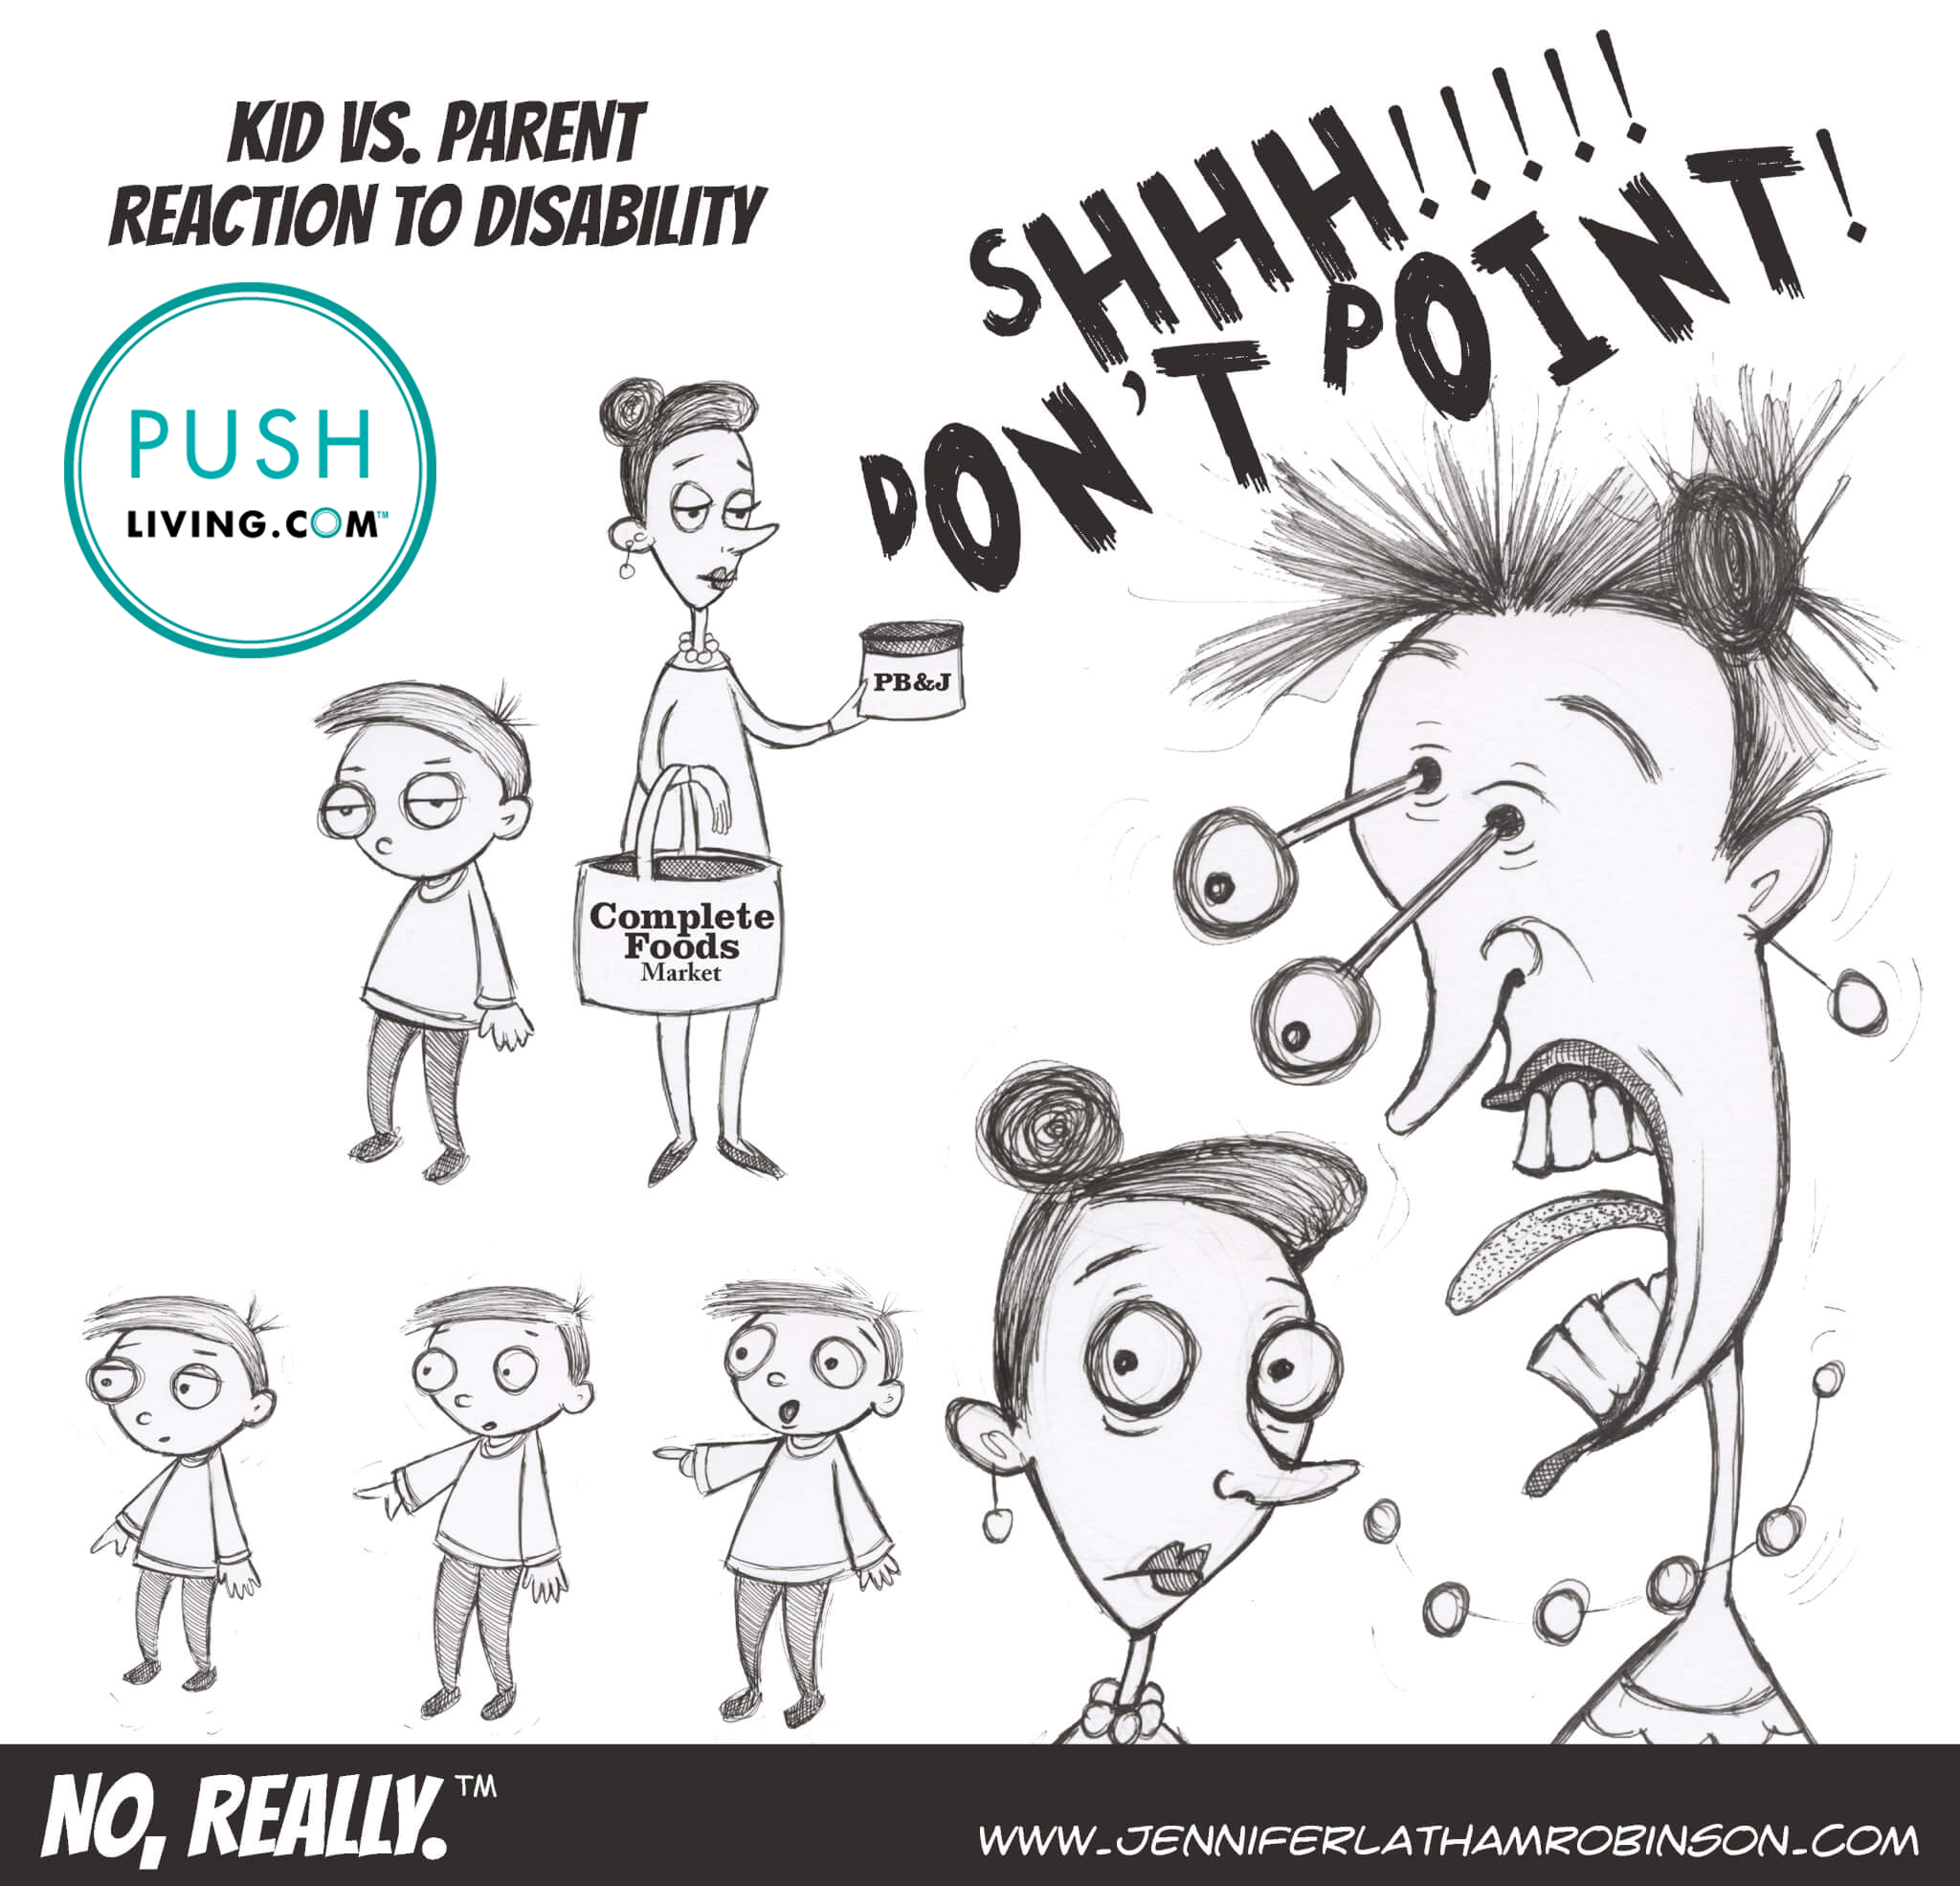 KIDVSPARENTREACTION 1 - PUSHLiving Comic Strip: Kid vs. Parent